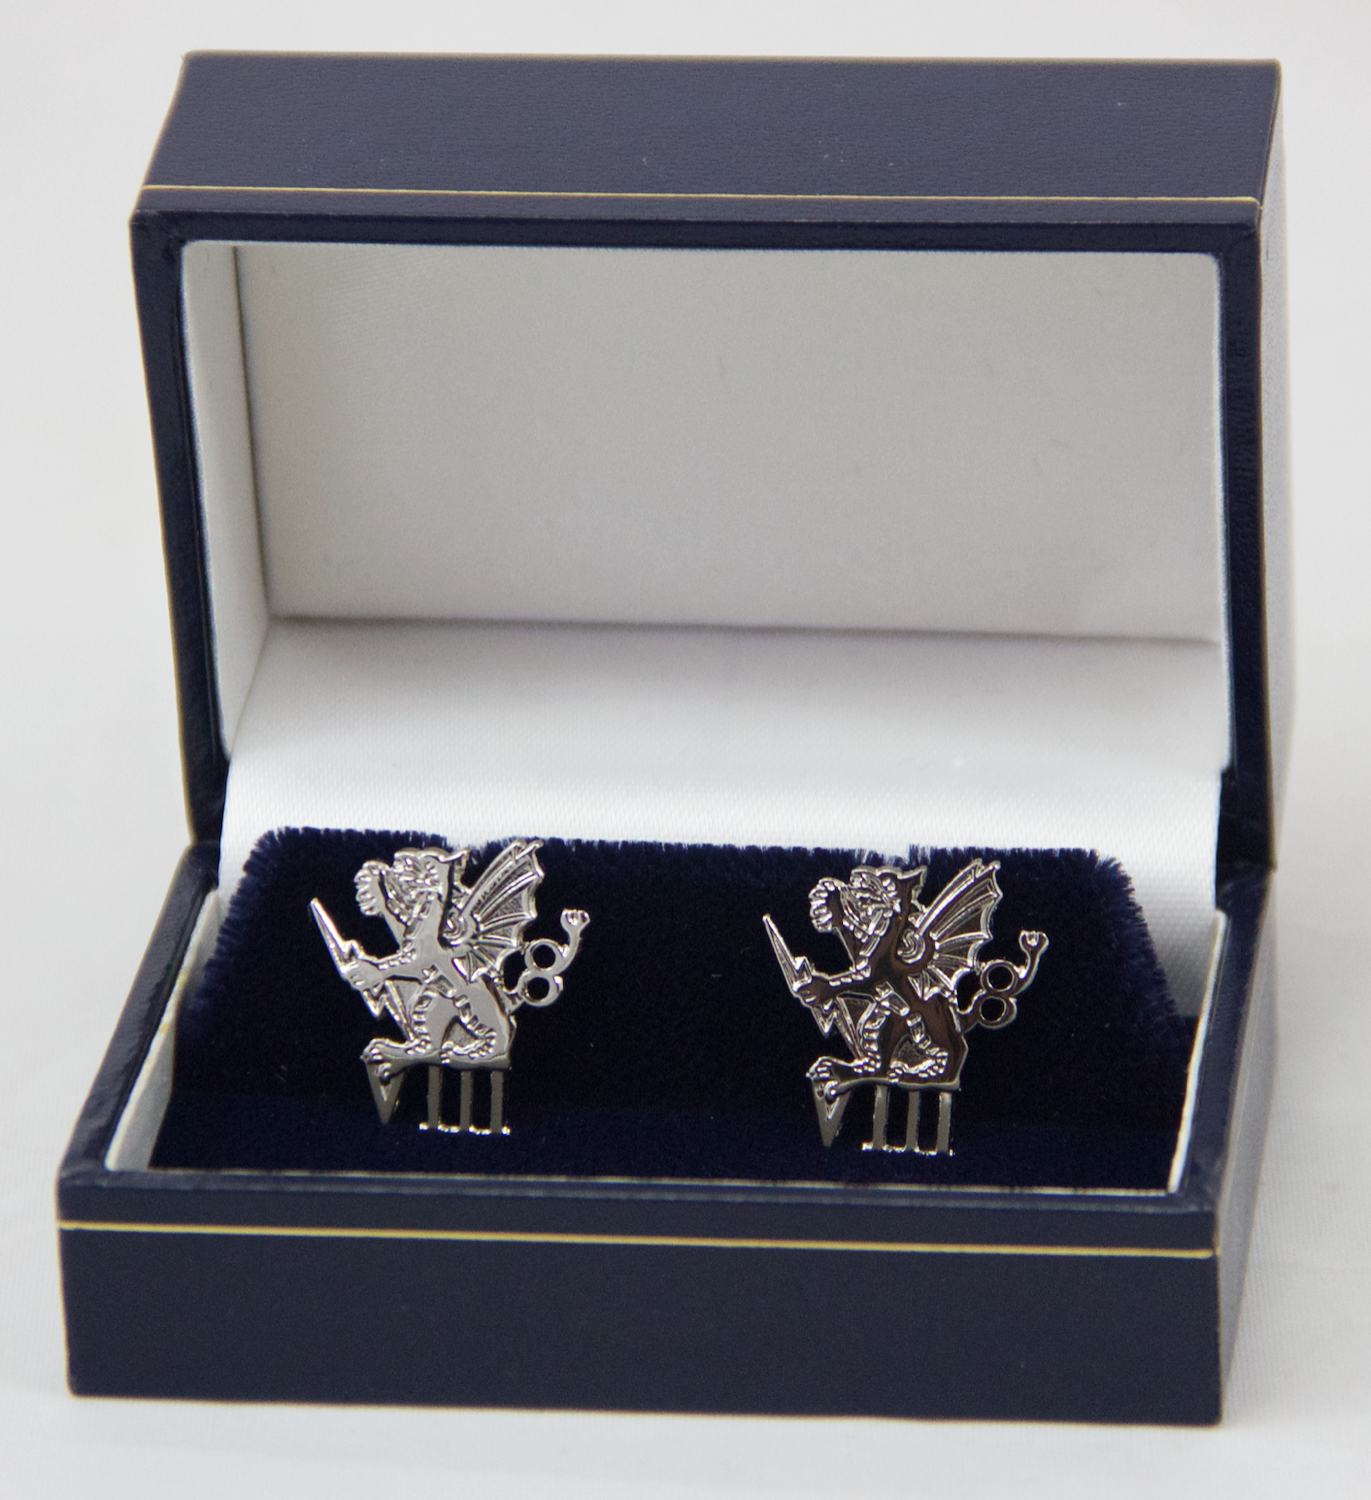 REME cufflinks_edited